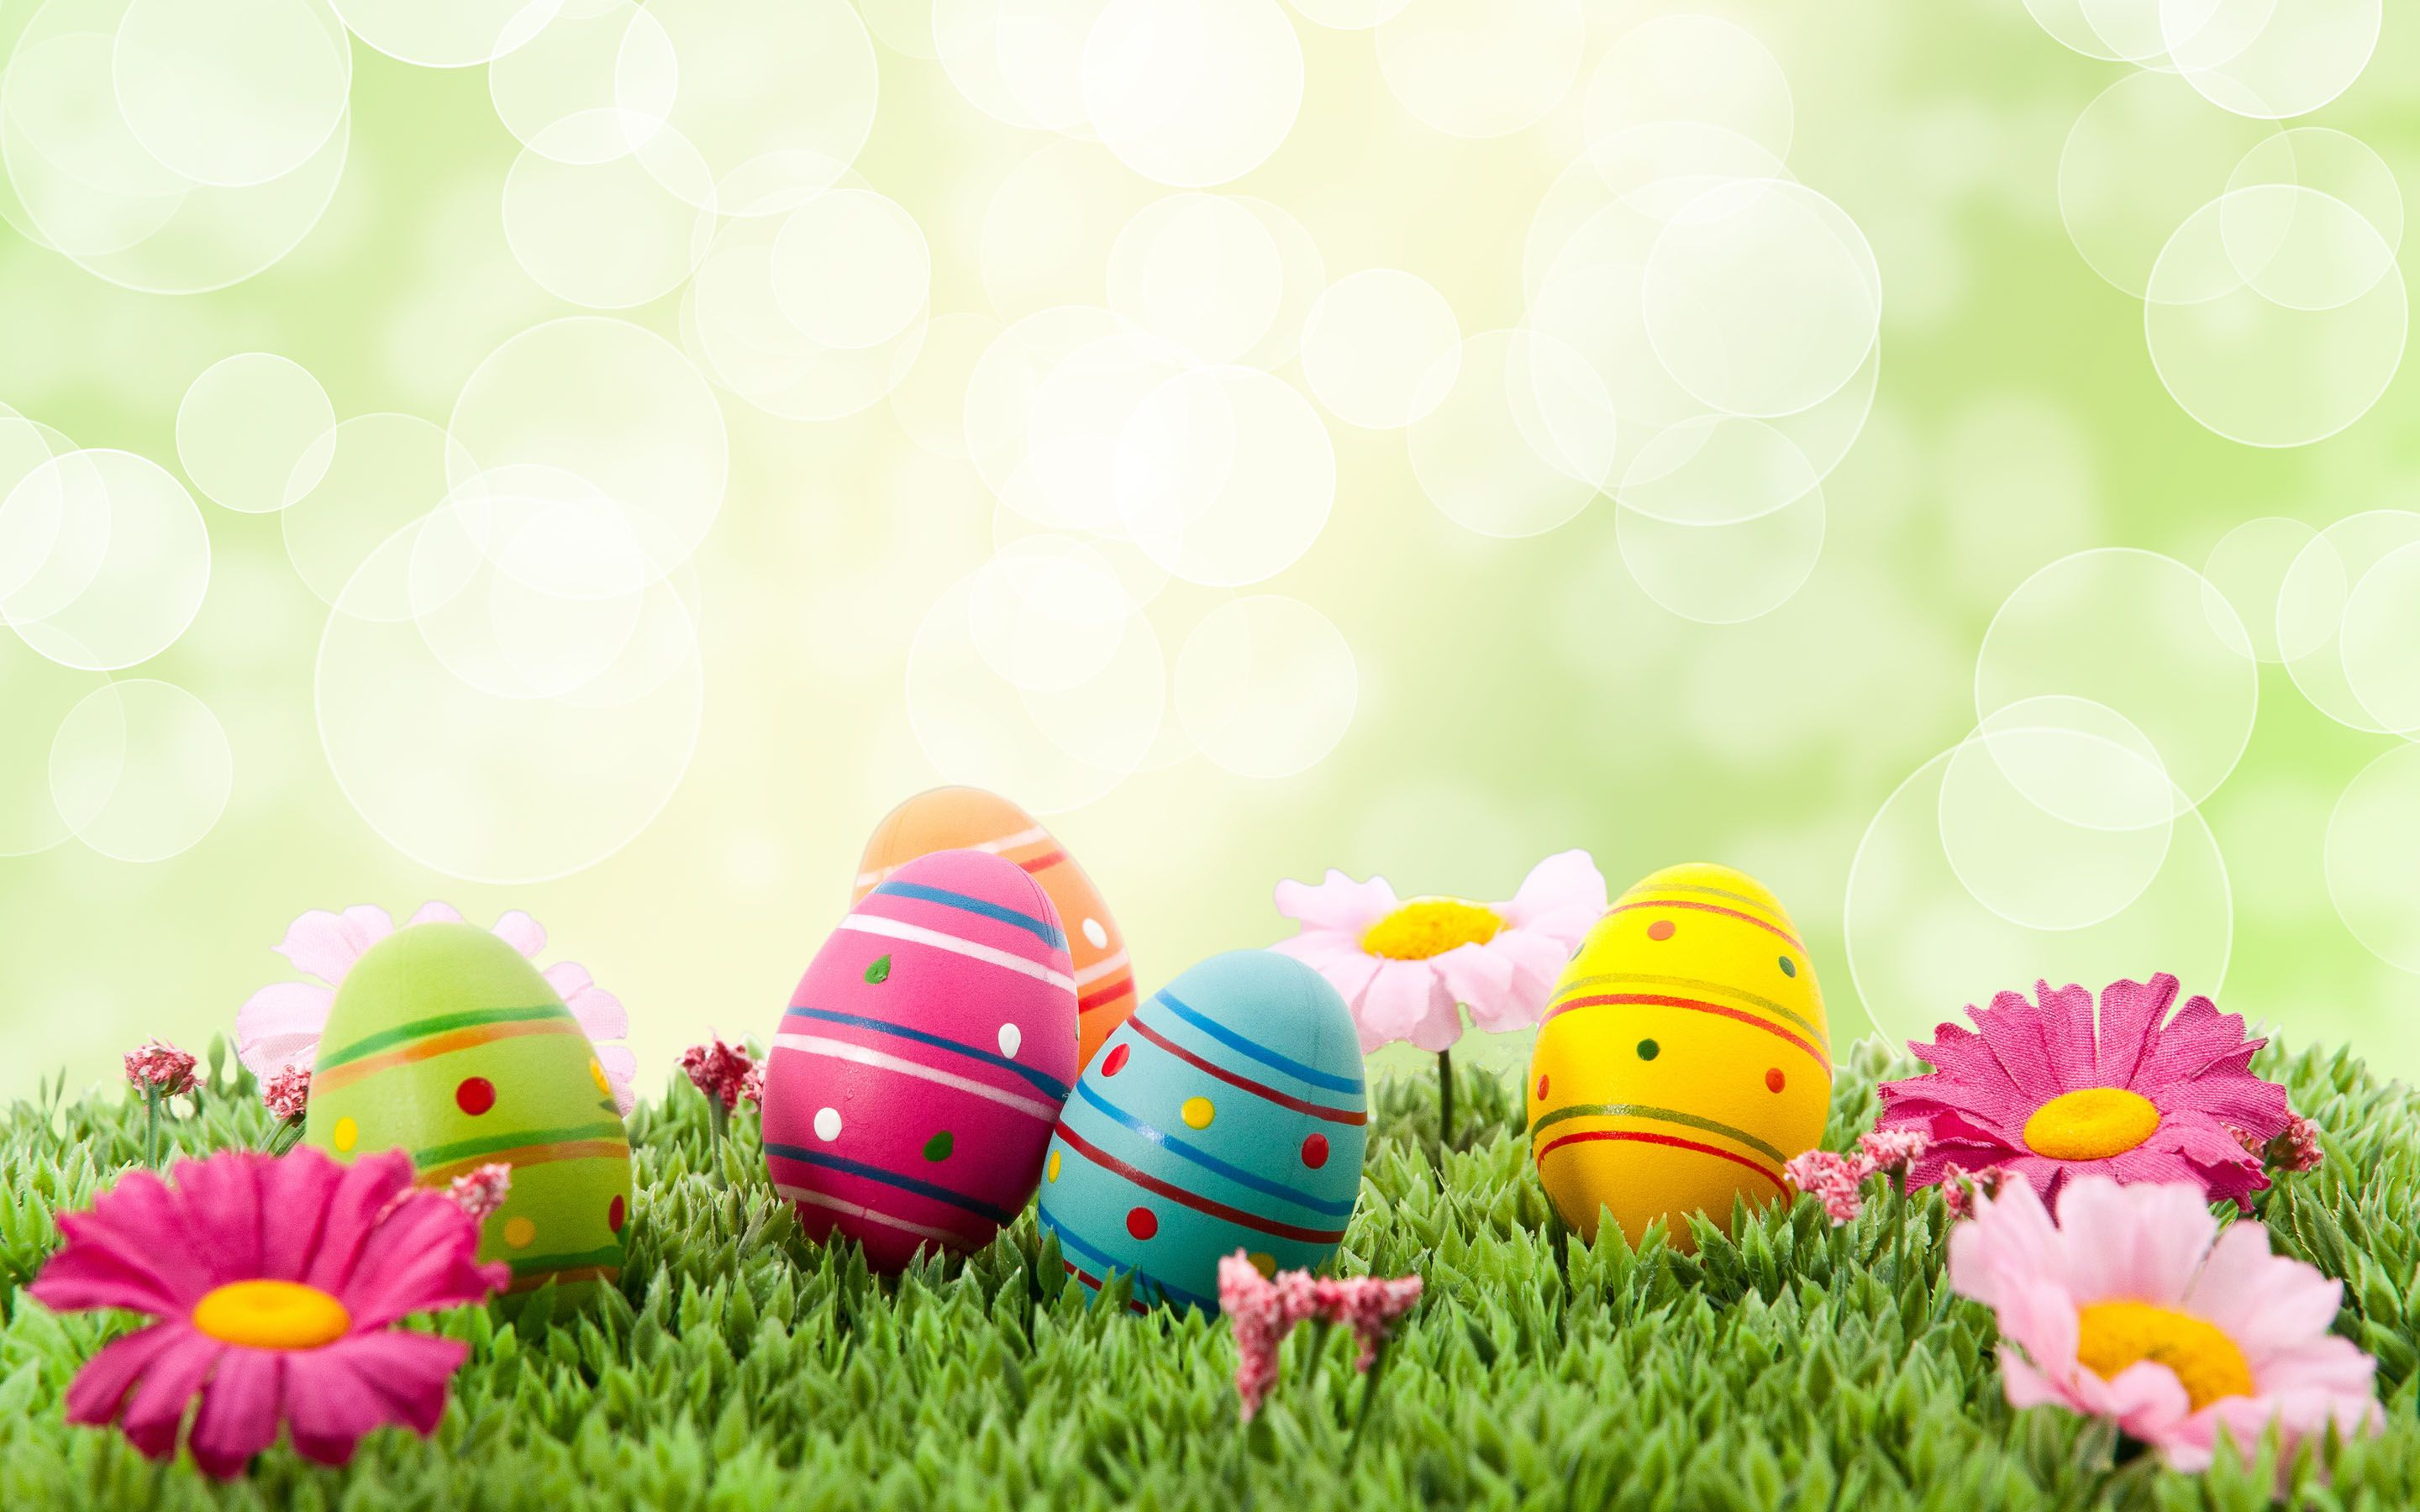 32 BEAUTIFUL EASTER WALLPAPER FREE TO DOWNLOAD Happy